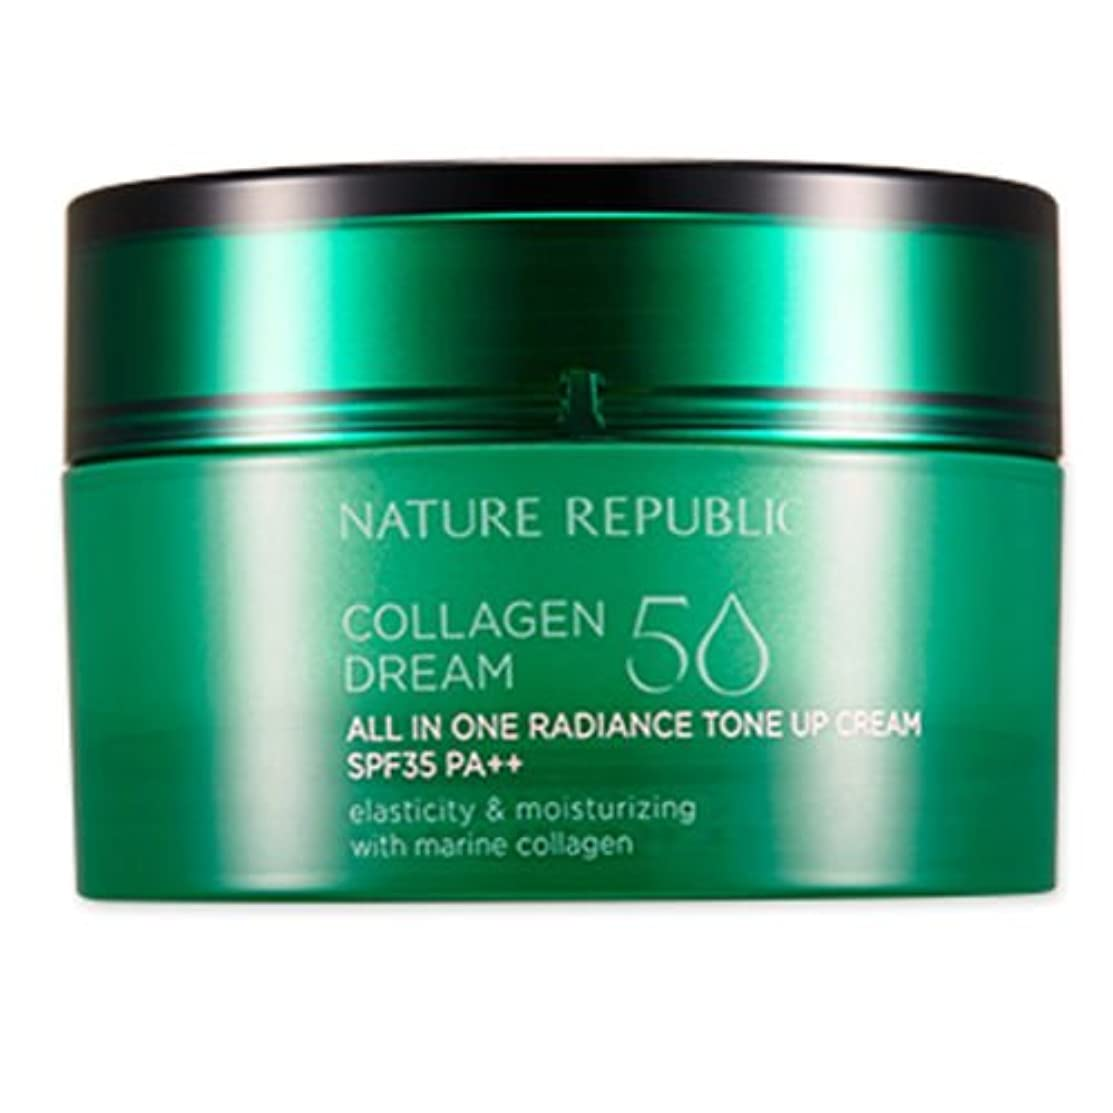 NATURE REPUBLIC Collagen Dream 50 All-In-One Radiance Tone Up Cream(SPF35PA++) ネイチャーリパブリック [韓国コスメ ] コラーゲンドリーム50...